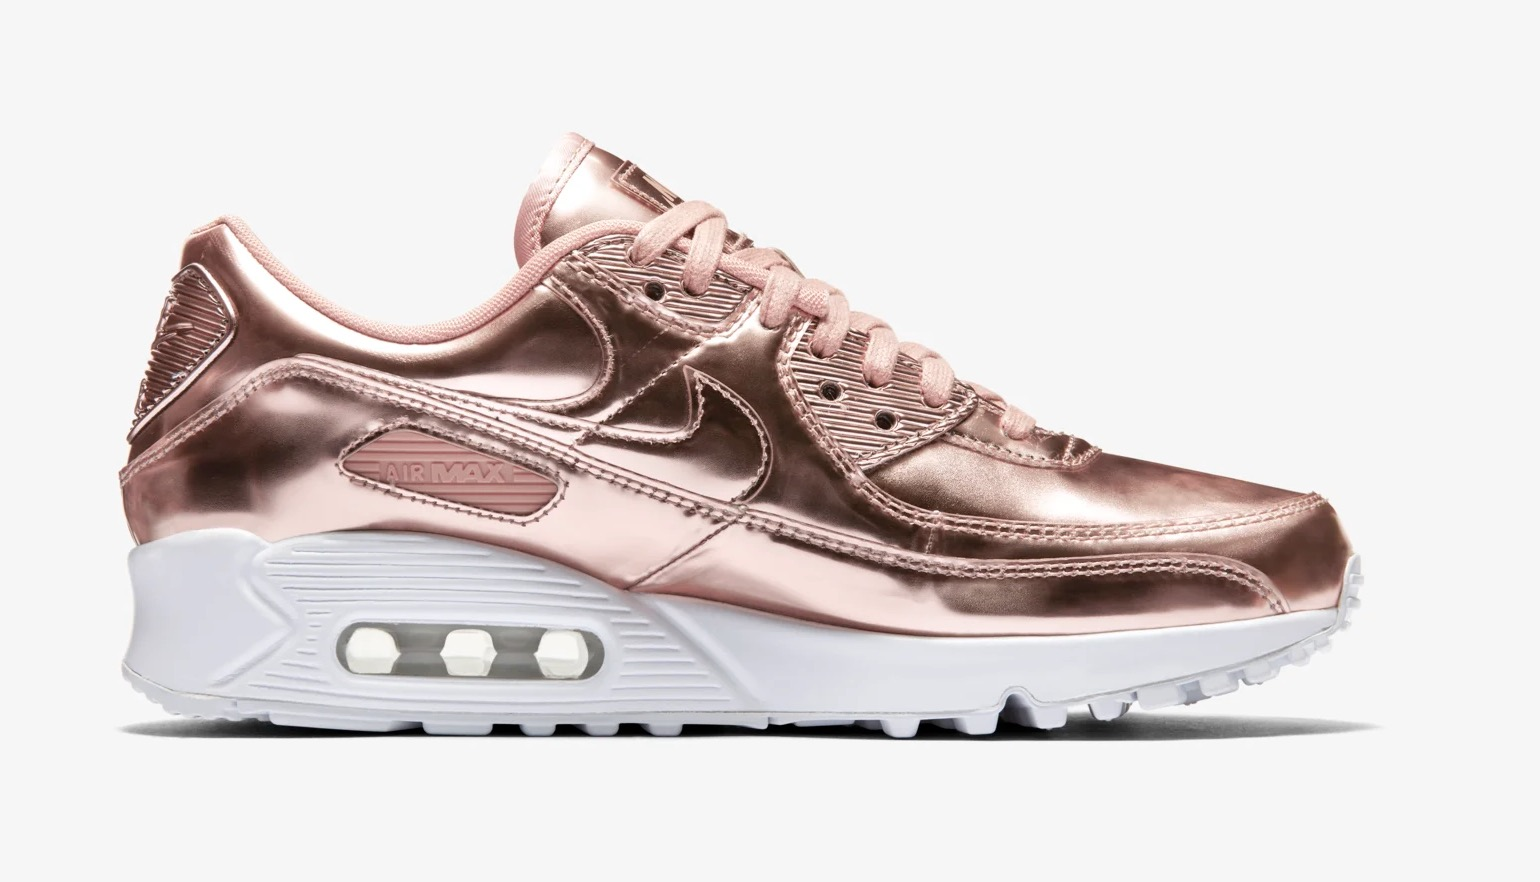 Nike Air Max 90 Rose Gold Liquid Metal right